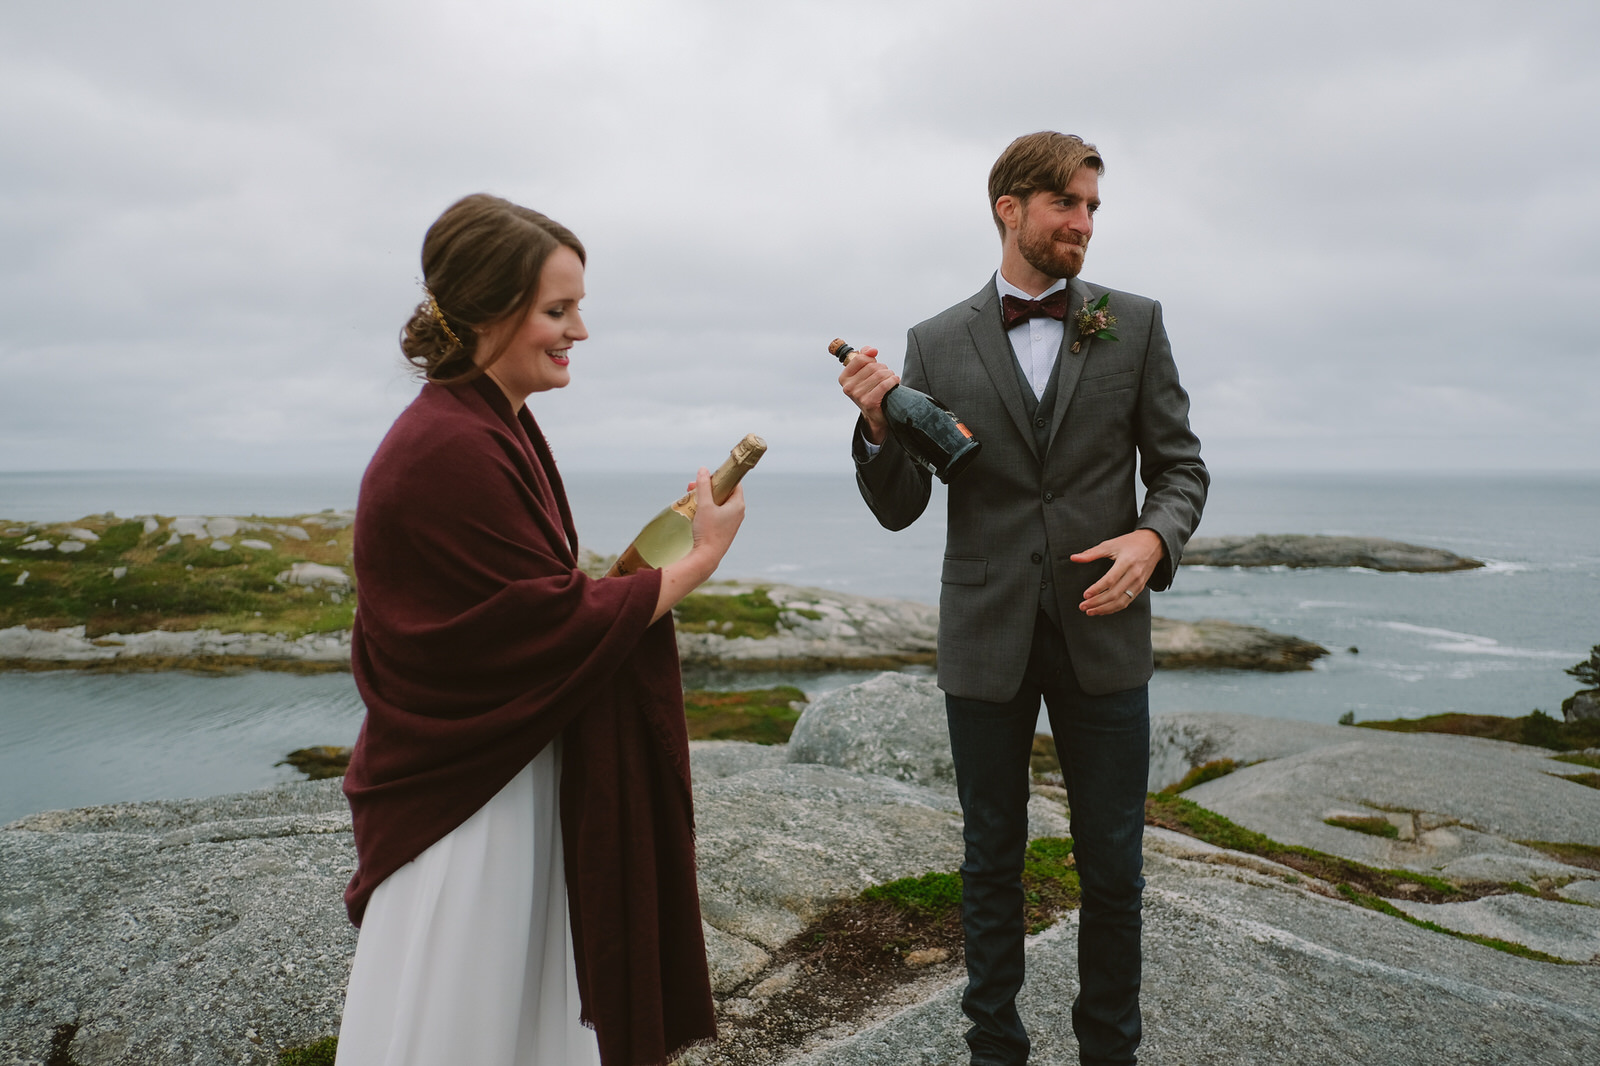 halifax nova scotia elopement-57.jpg